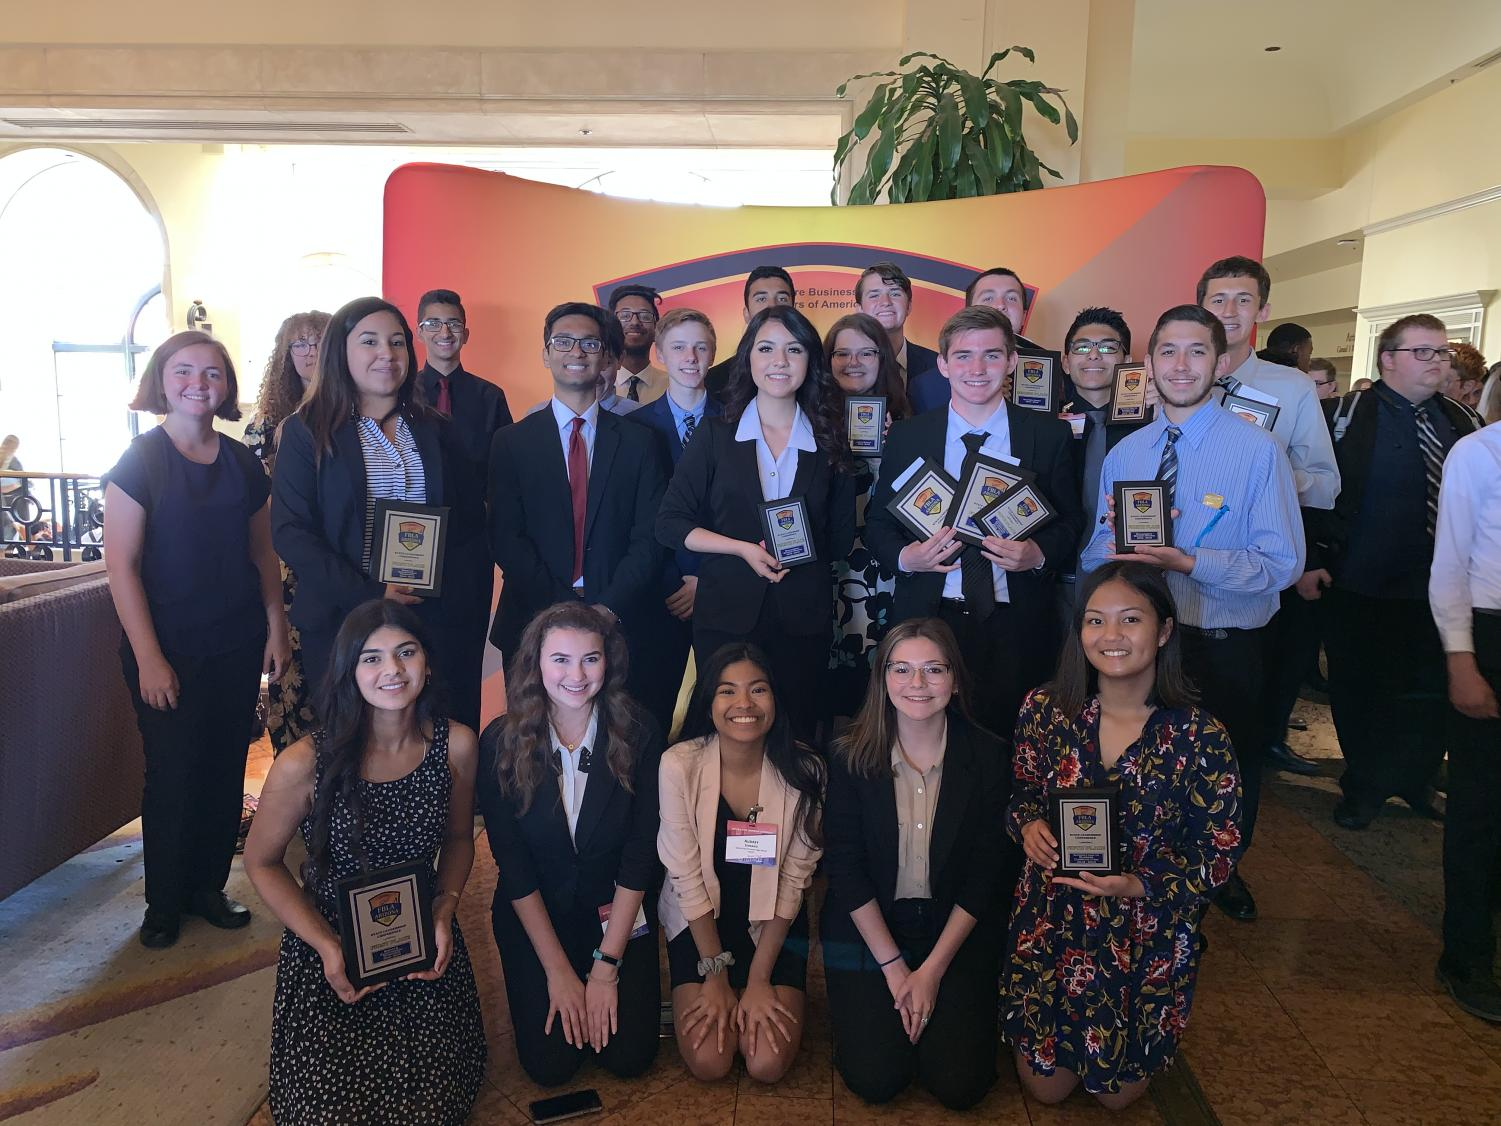 FBLA poses with their hard earned awards from the competition